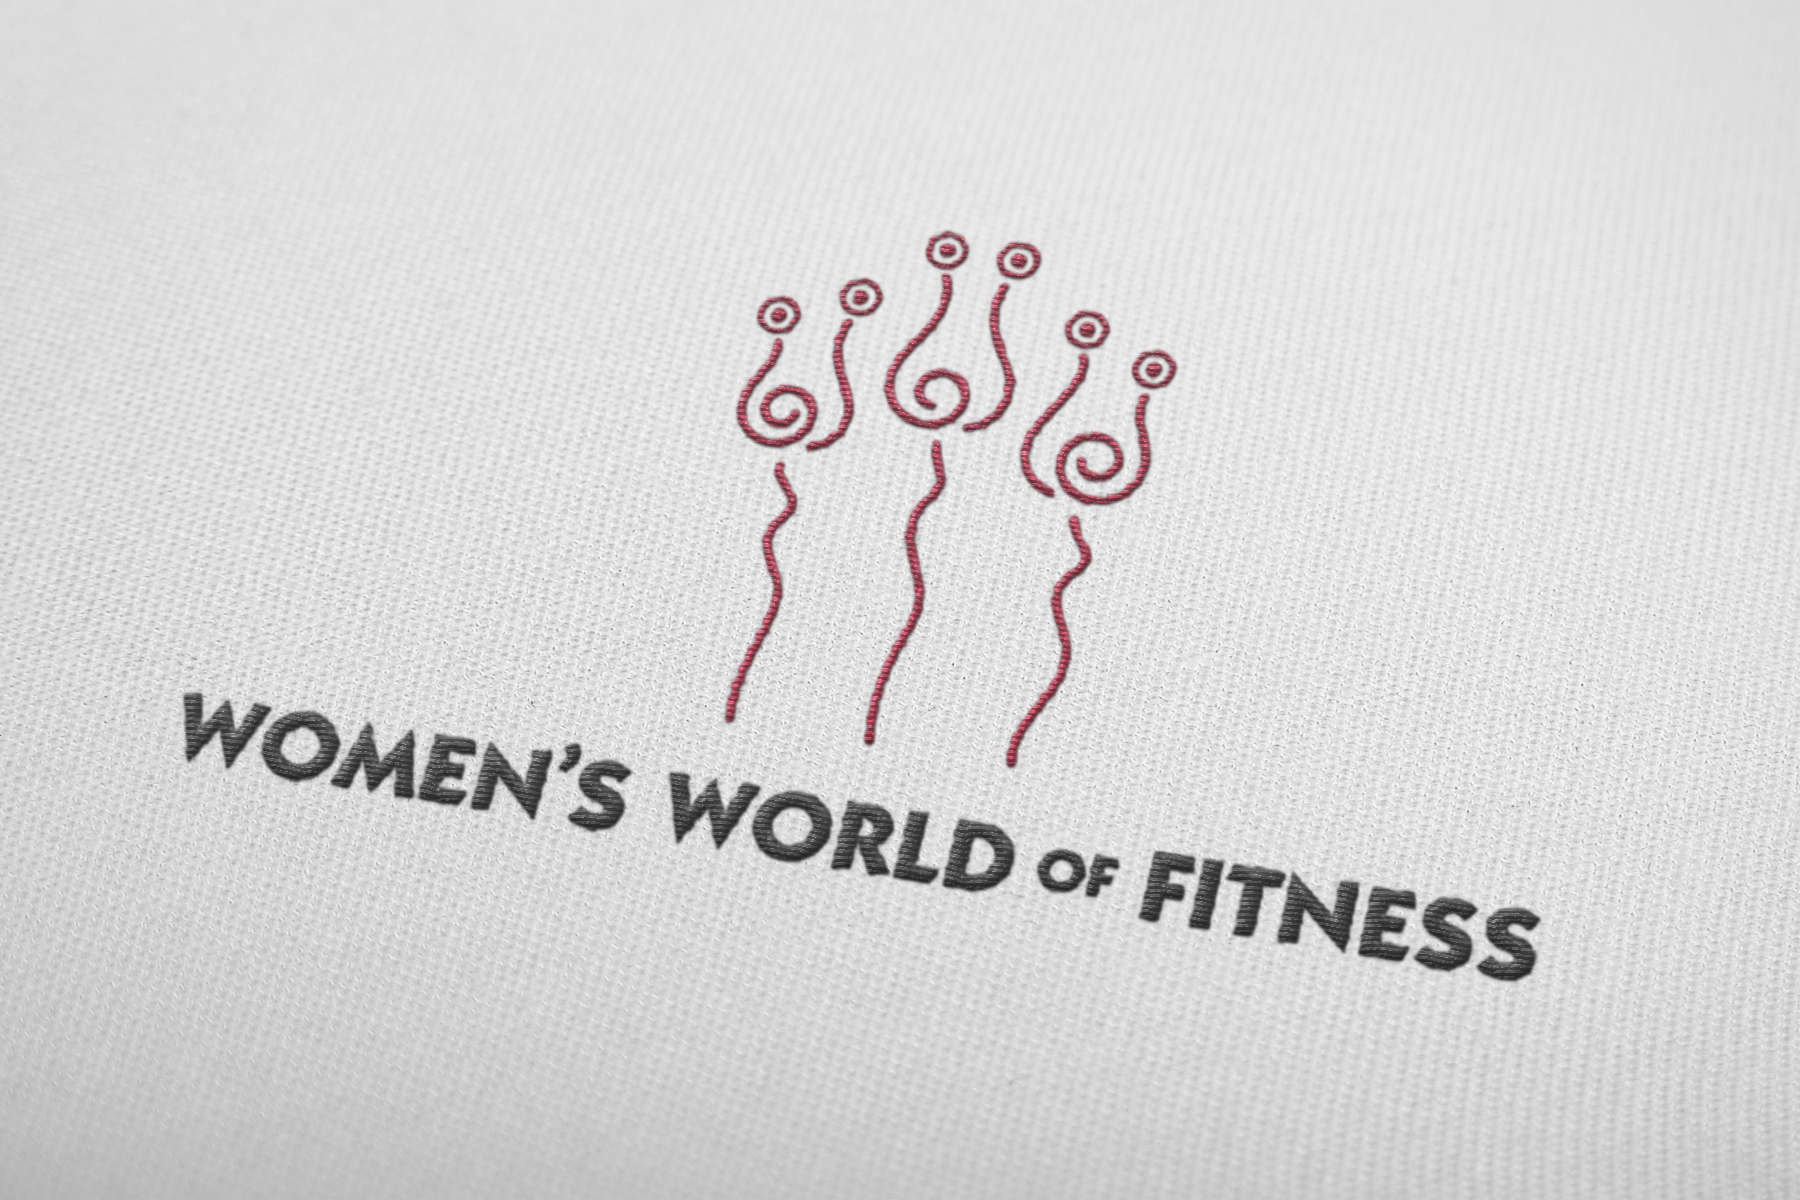 A gym concept for women, this logo aims to convey a feminine, yet strong personality. Corporate icon depicts three figures reminiscent of women lifting weights, as well as three blooming roses.